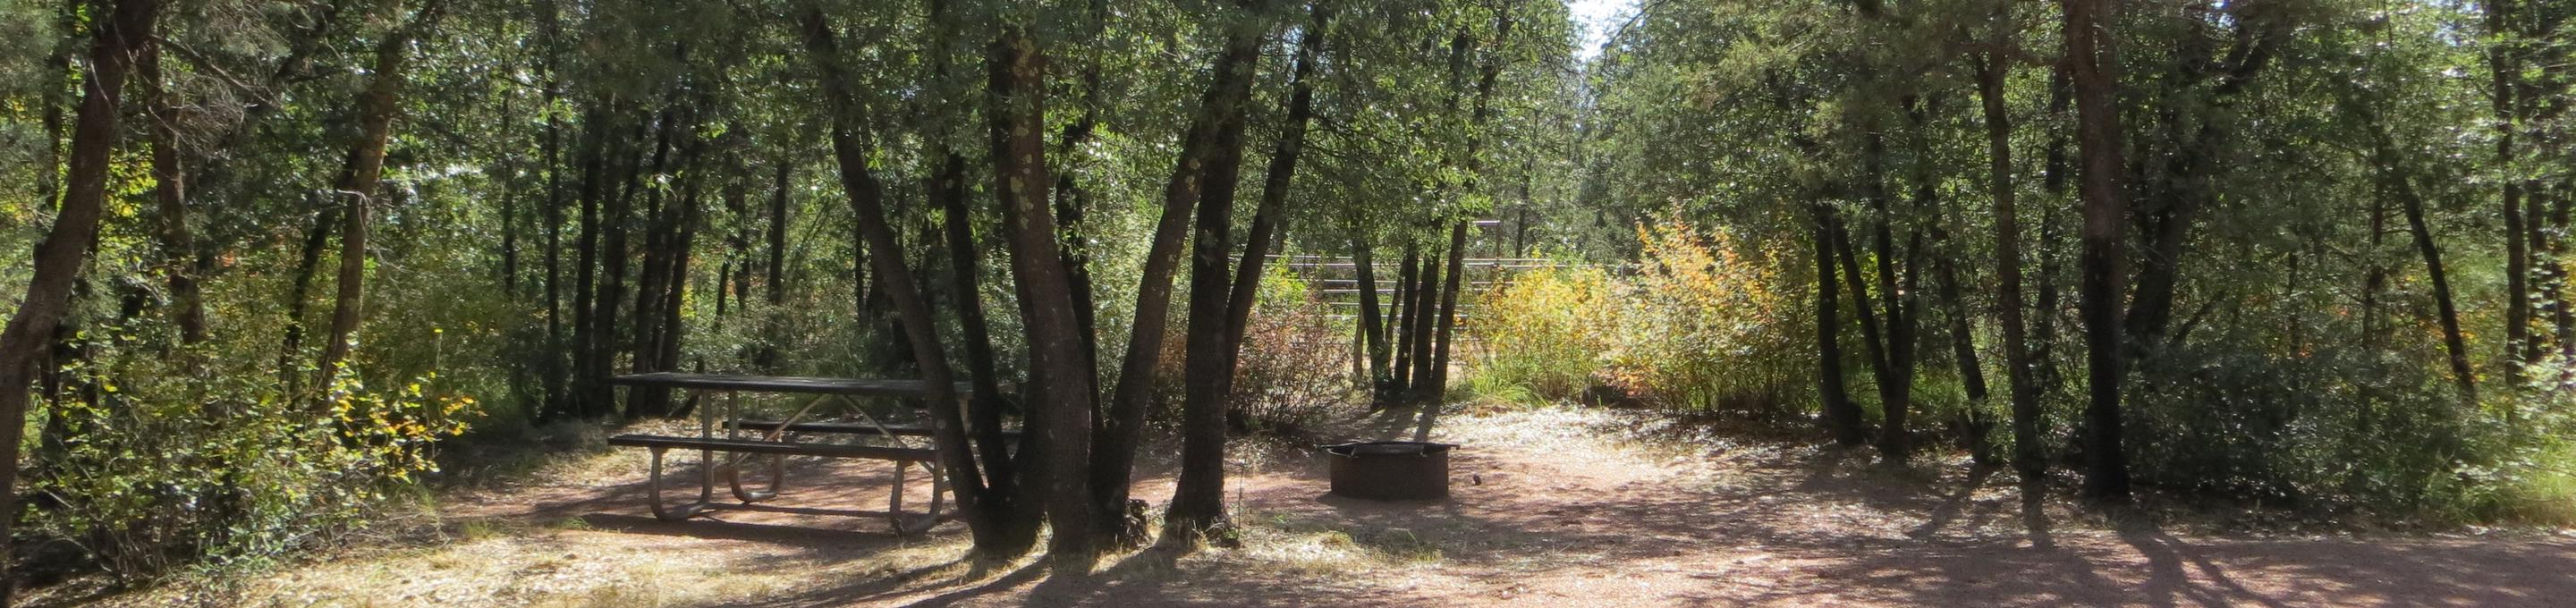 Houston Mesa, Horse Camp site #17 featuring shaded picnic area, camping space, and fire pit.